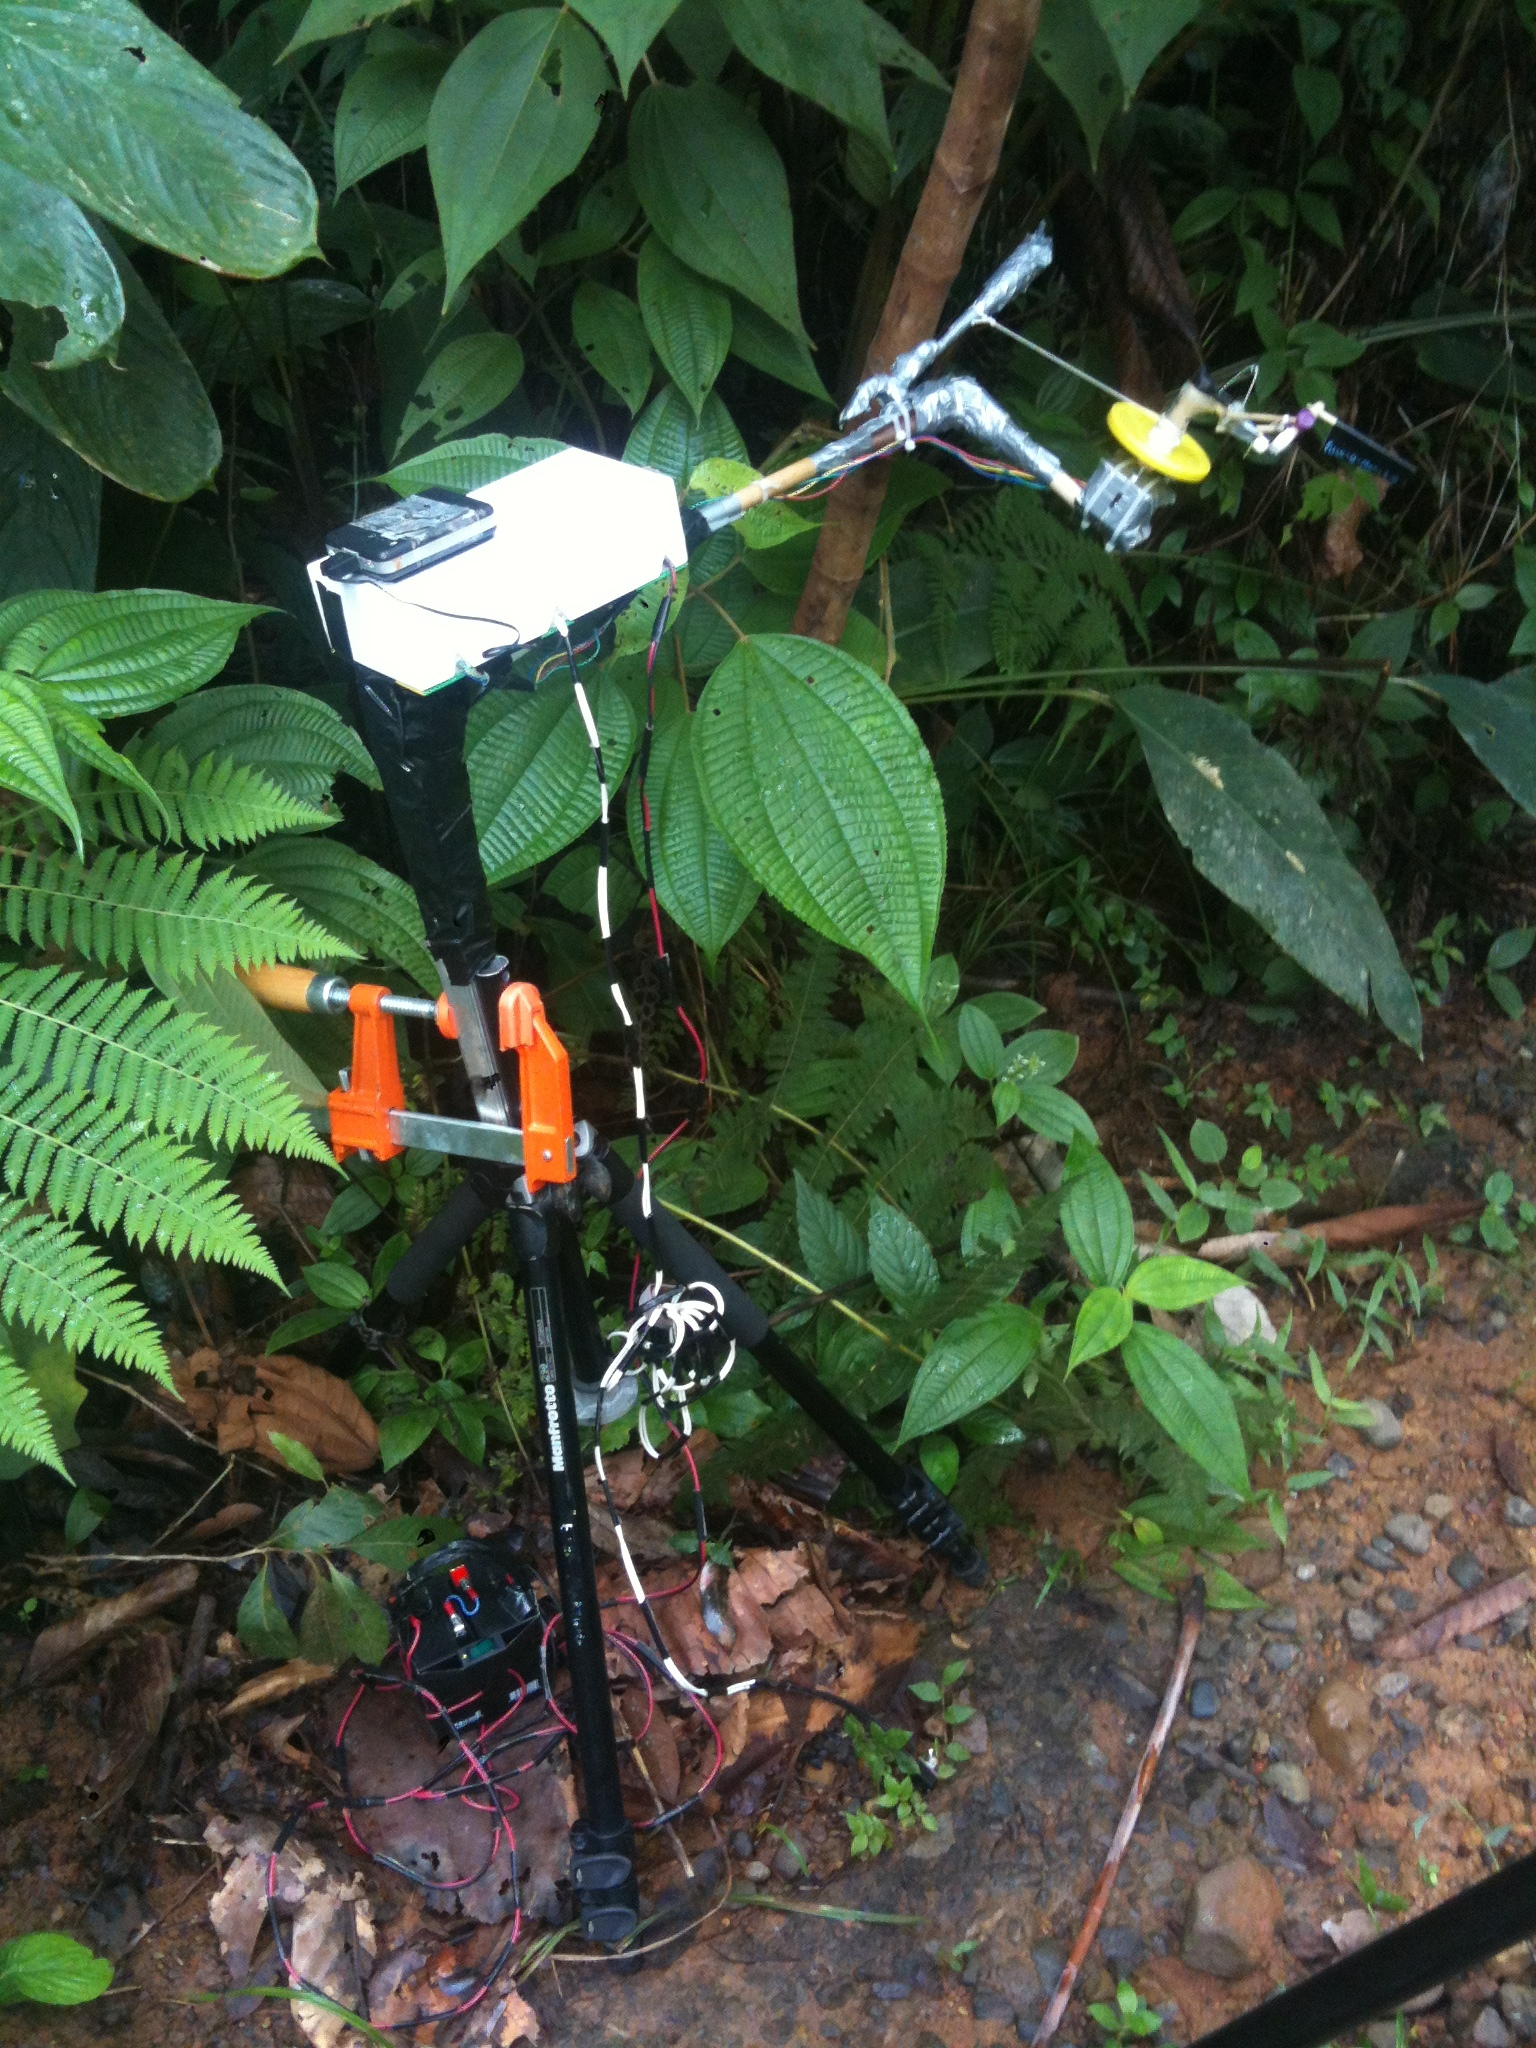 The Flick-o-matic 2.0 poised to flick a Cecropia tree